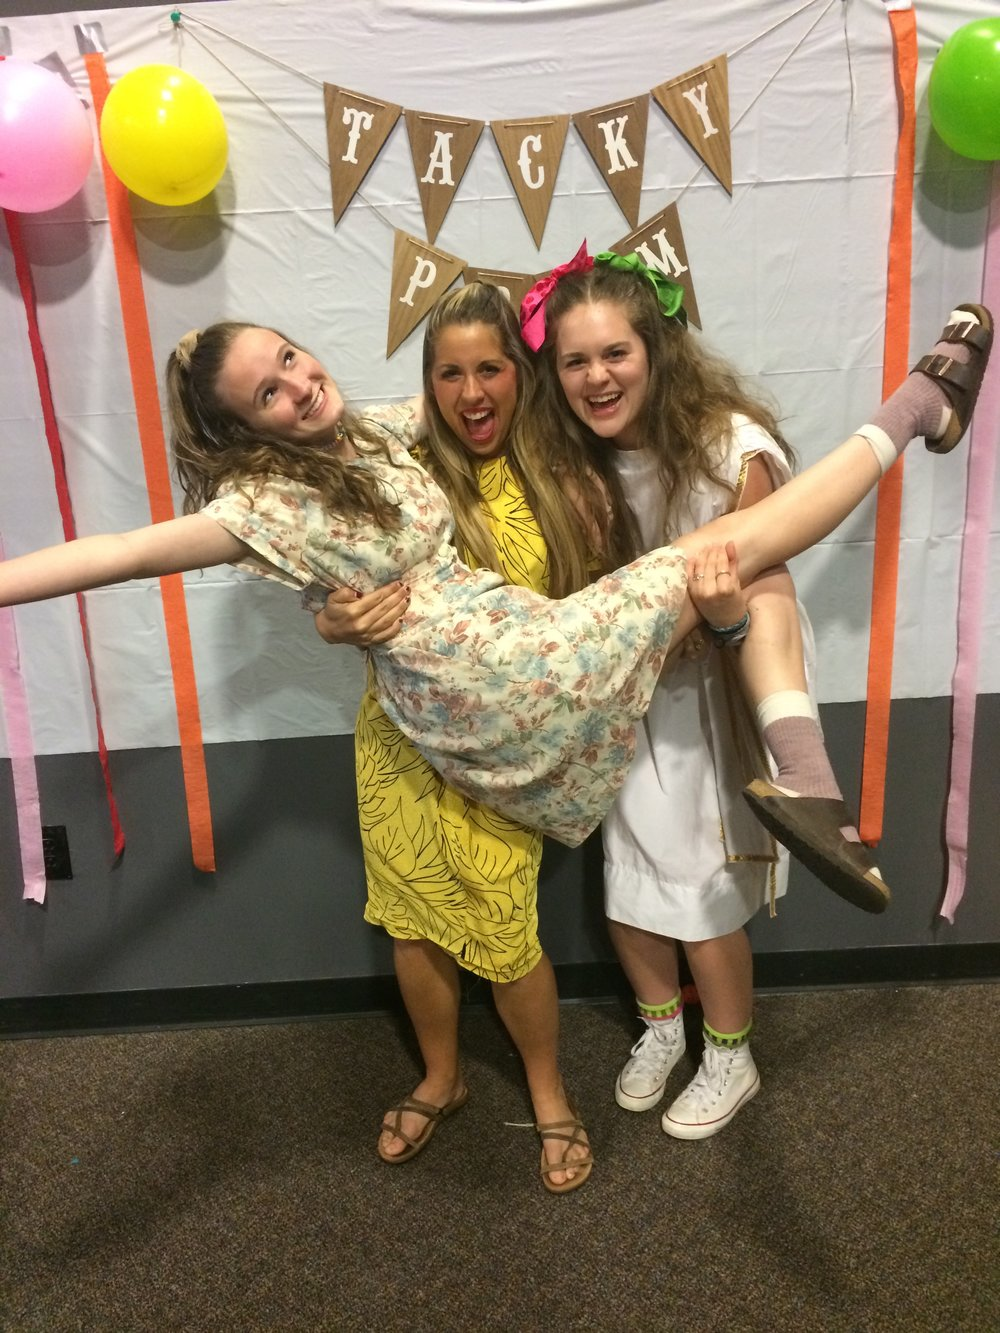 YoungLife Tacky Prom with some gems.